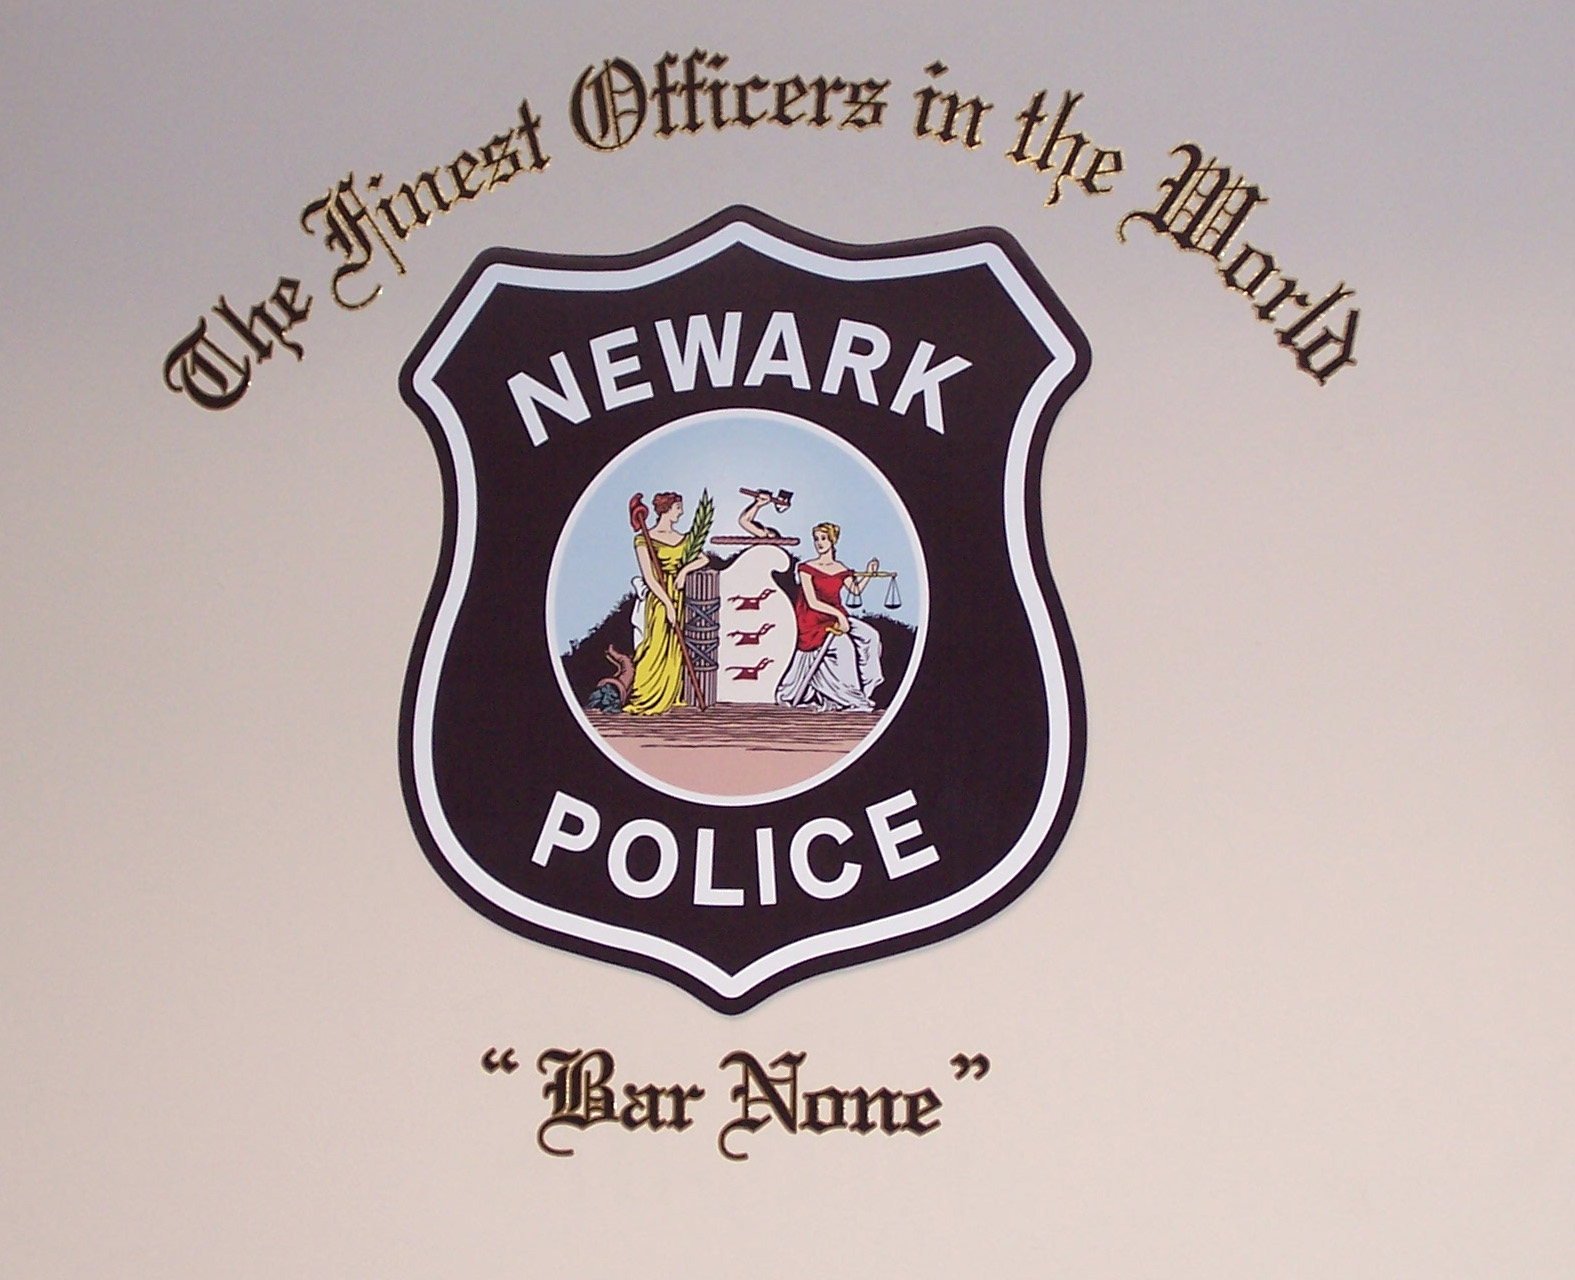 November 5, 2010: NEWARK — Newark Mayor Cory Booker may not want a federal probe into the city's police department, but a majority of city council members are pleading for one. […]